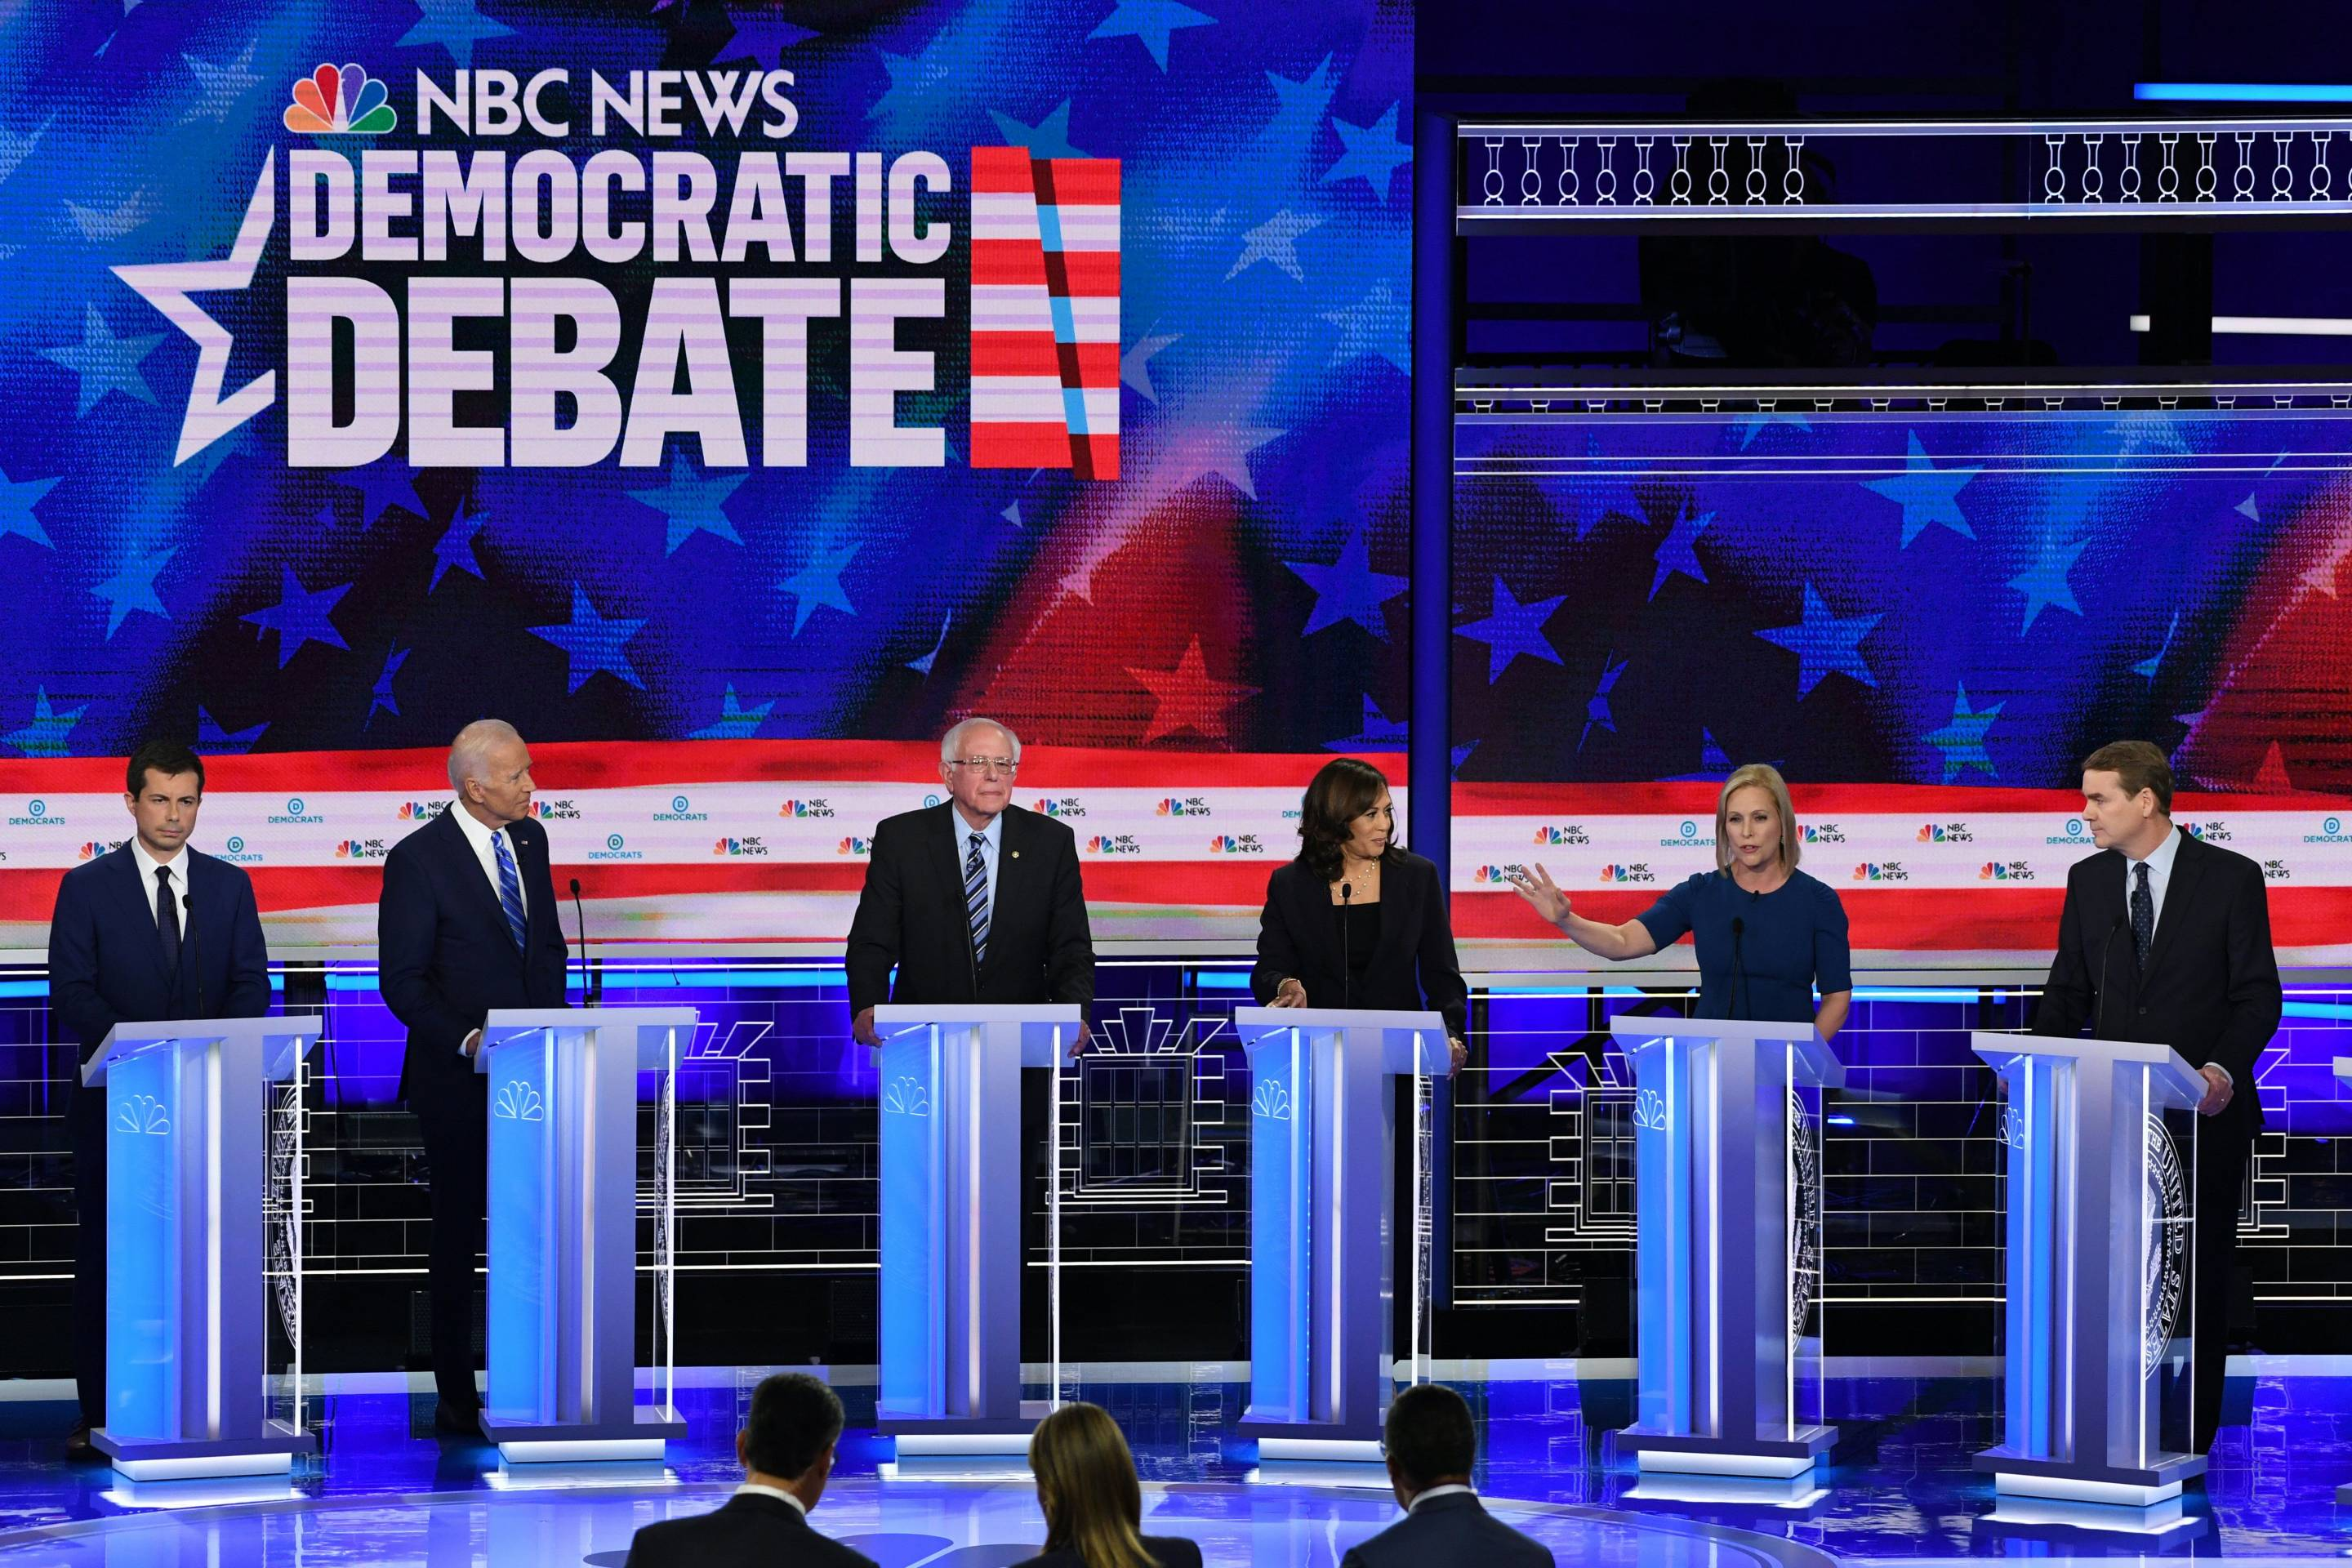 USA: 2020 Presidential Debate Round #2 ' A Go!' Lineups below #NoCriticsJustPolitics